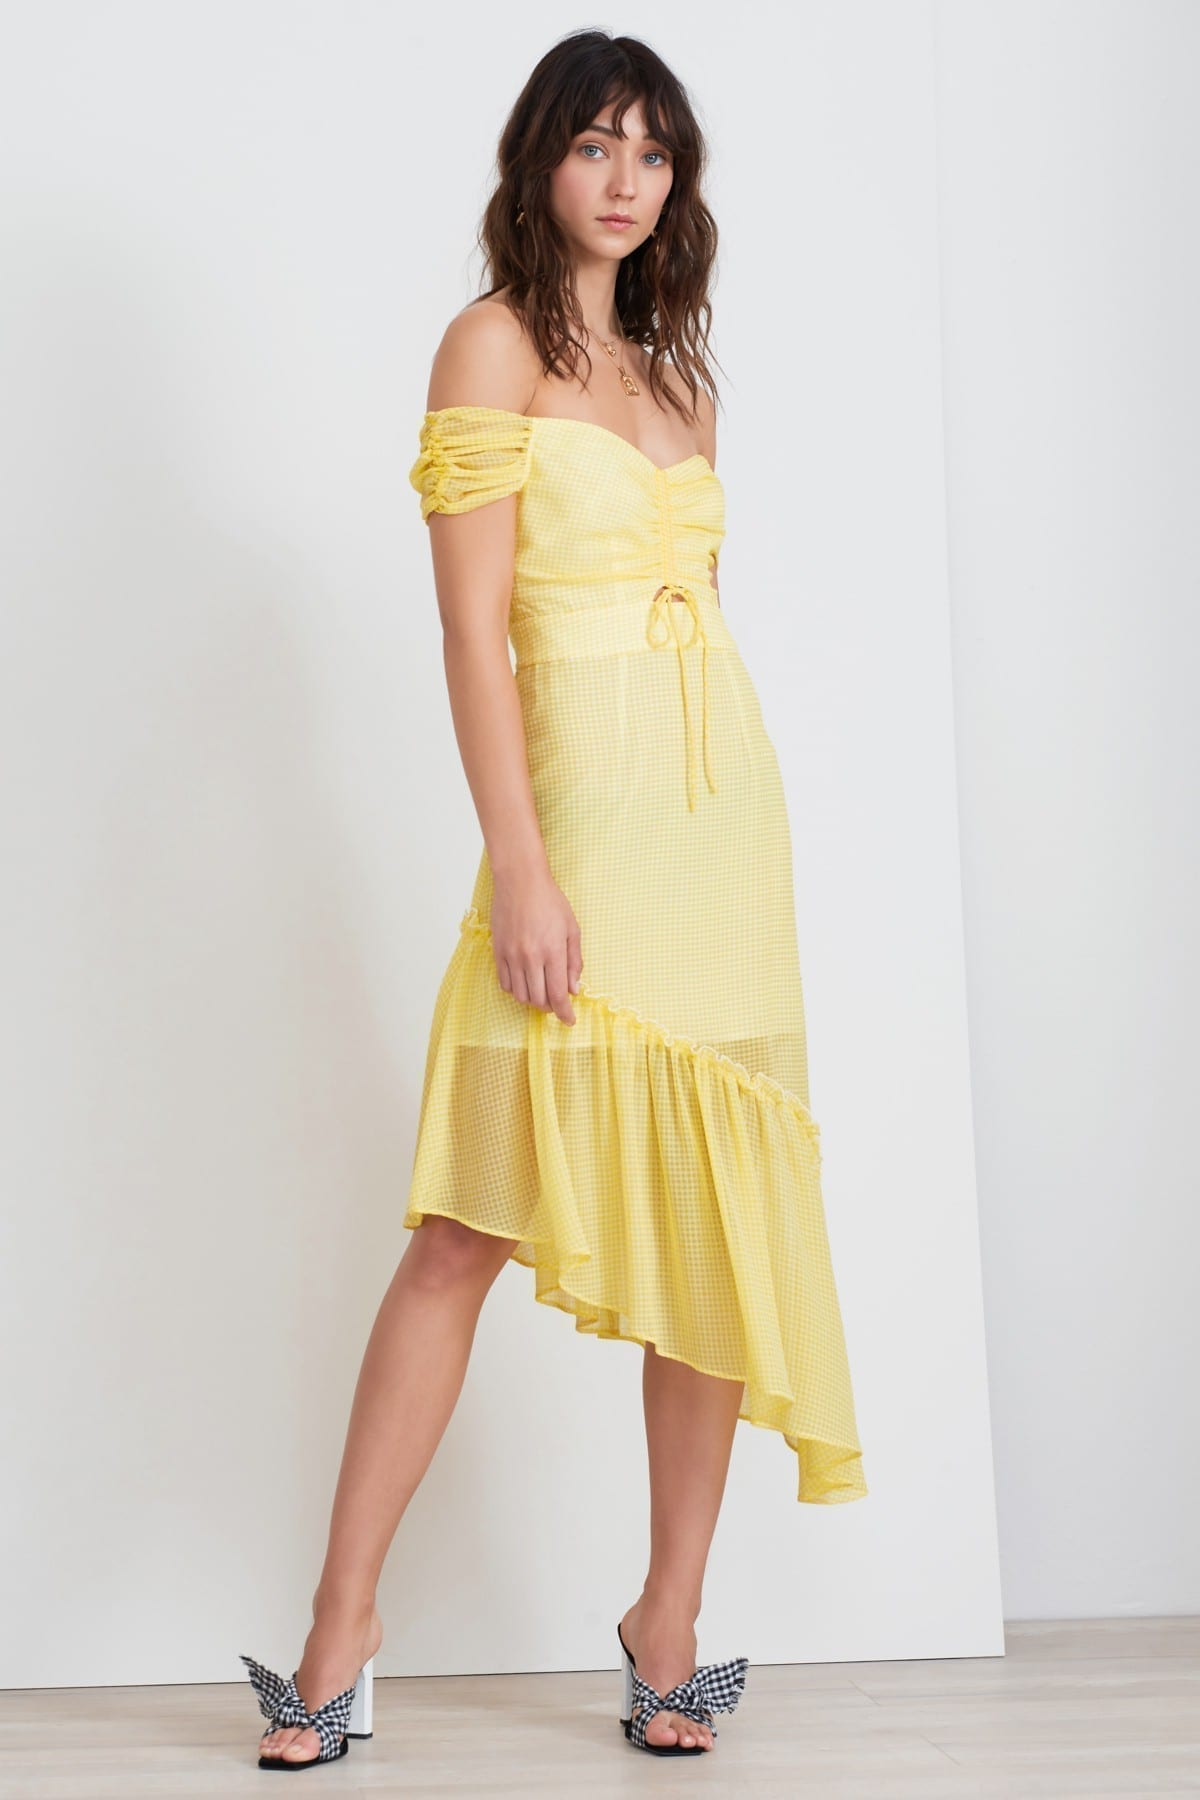 FINDERS KEEPERS Horizons Lemonade Gingham Dress